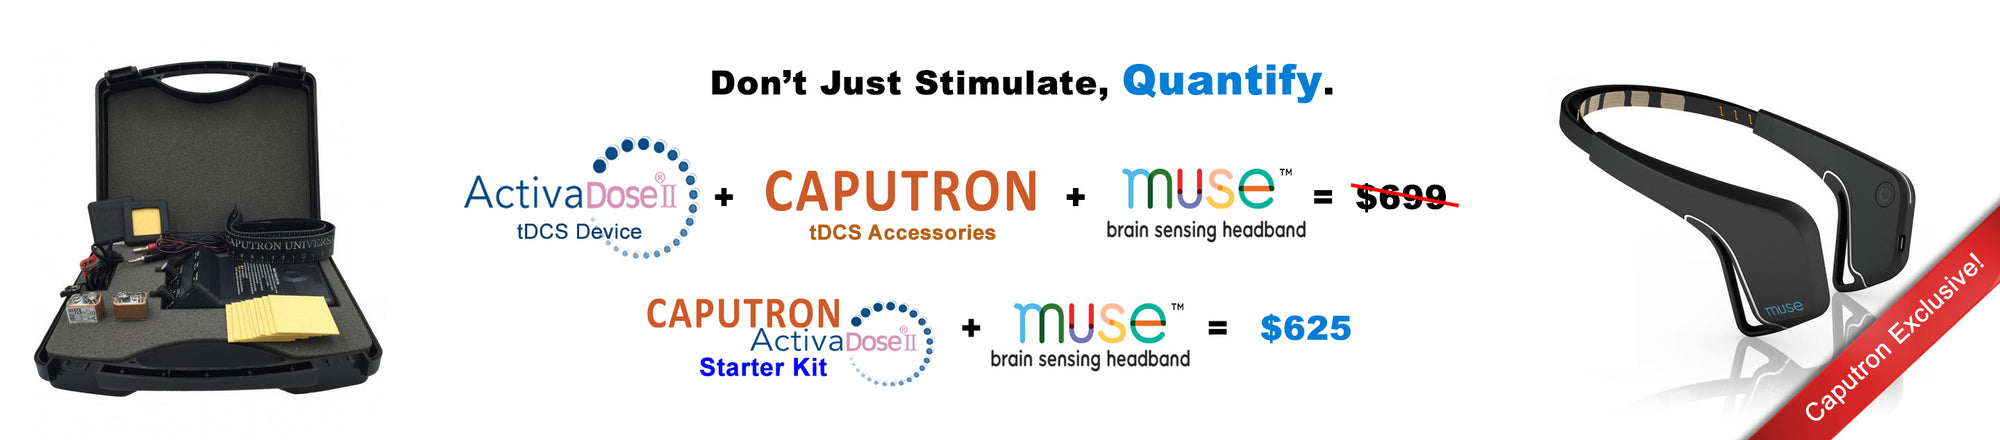 Activadose tDCS Device with Muse EEG Headband - Caputron EEG and tDCS Devices and Accessories